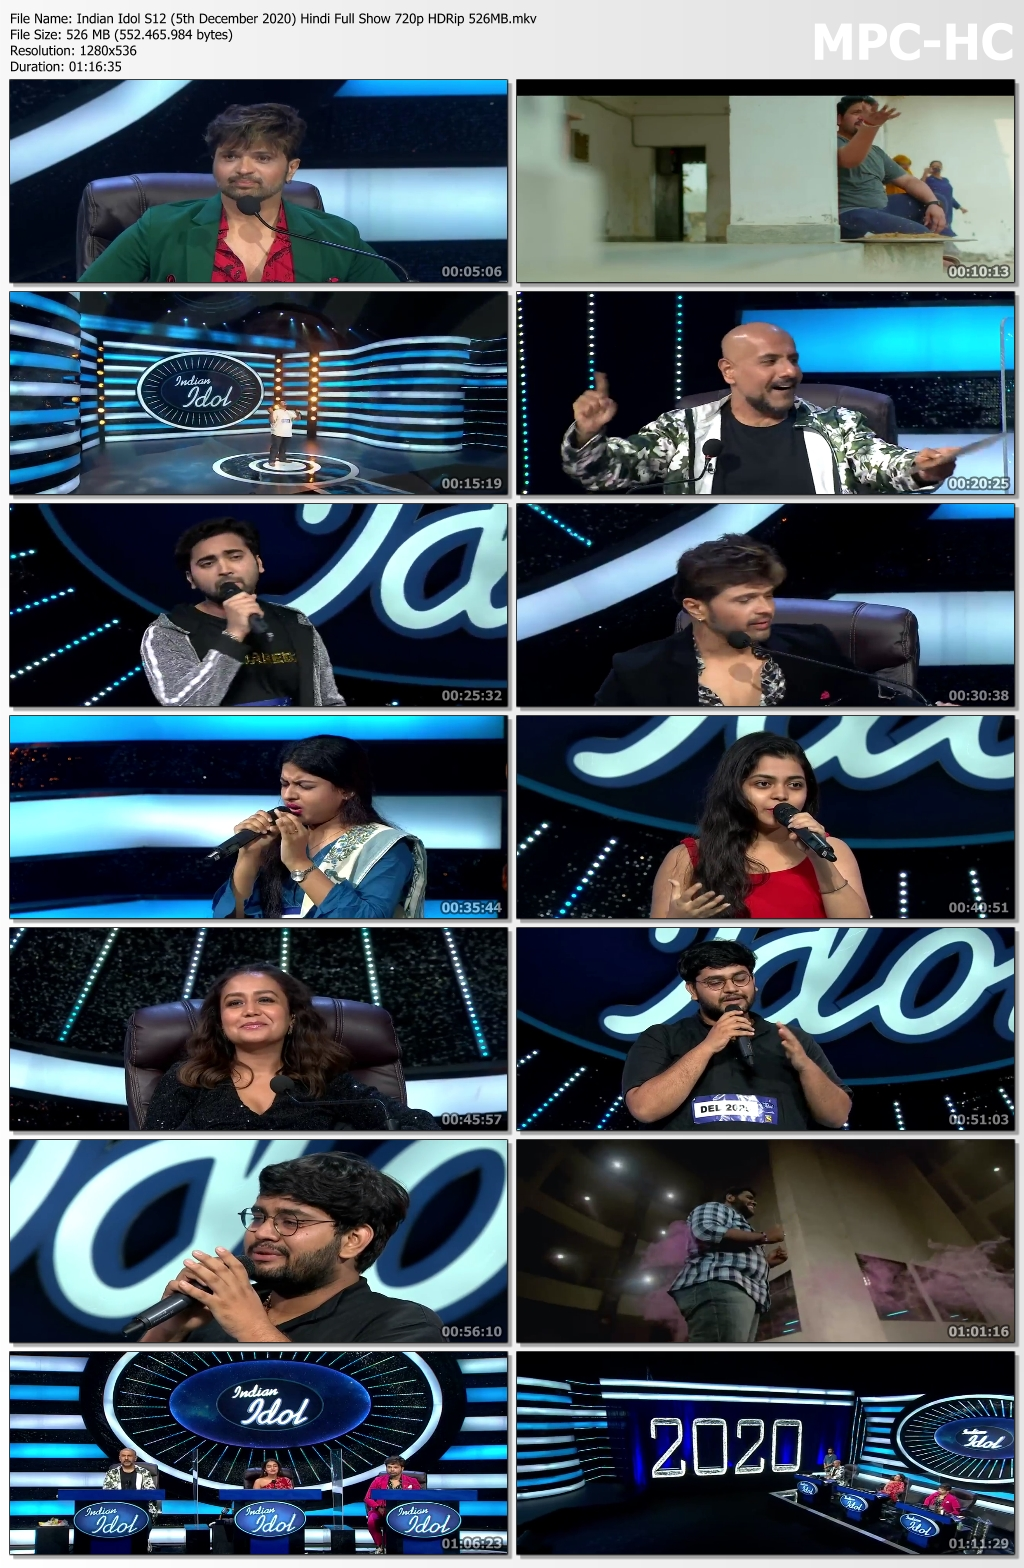 Indian-Idol-S12-5th-December-2020-Hindi-Full-Show-720p-HDRip-526-MB-mkv-thumbs